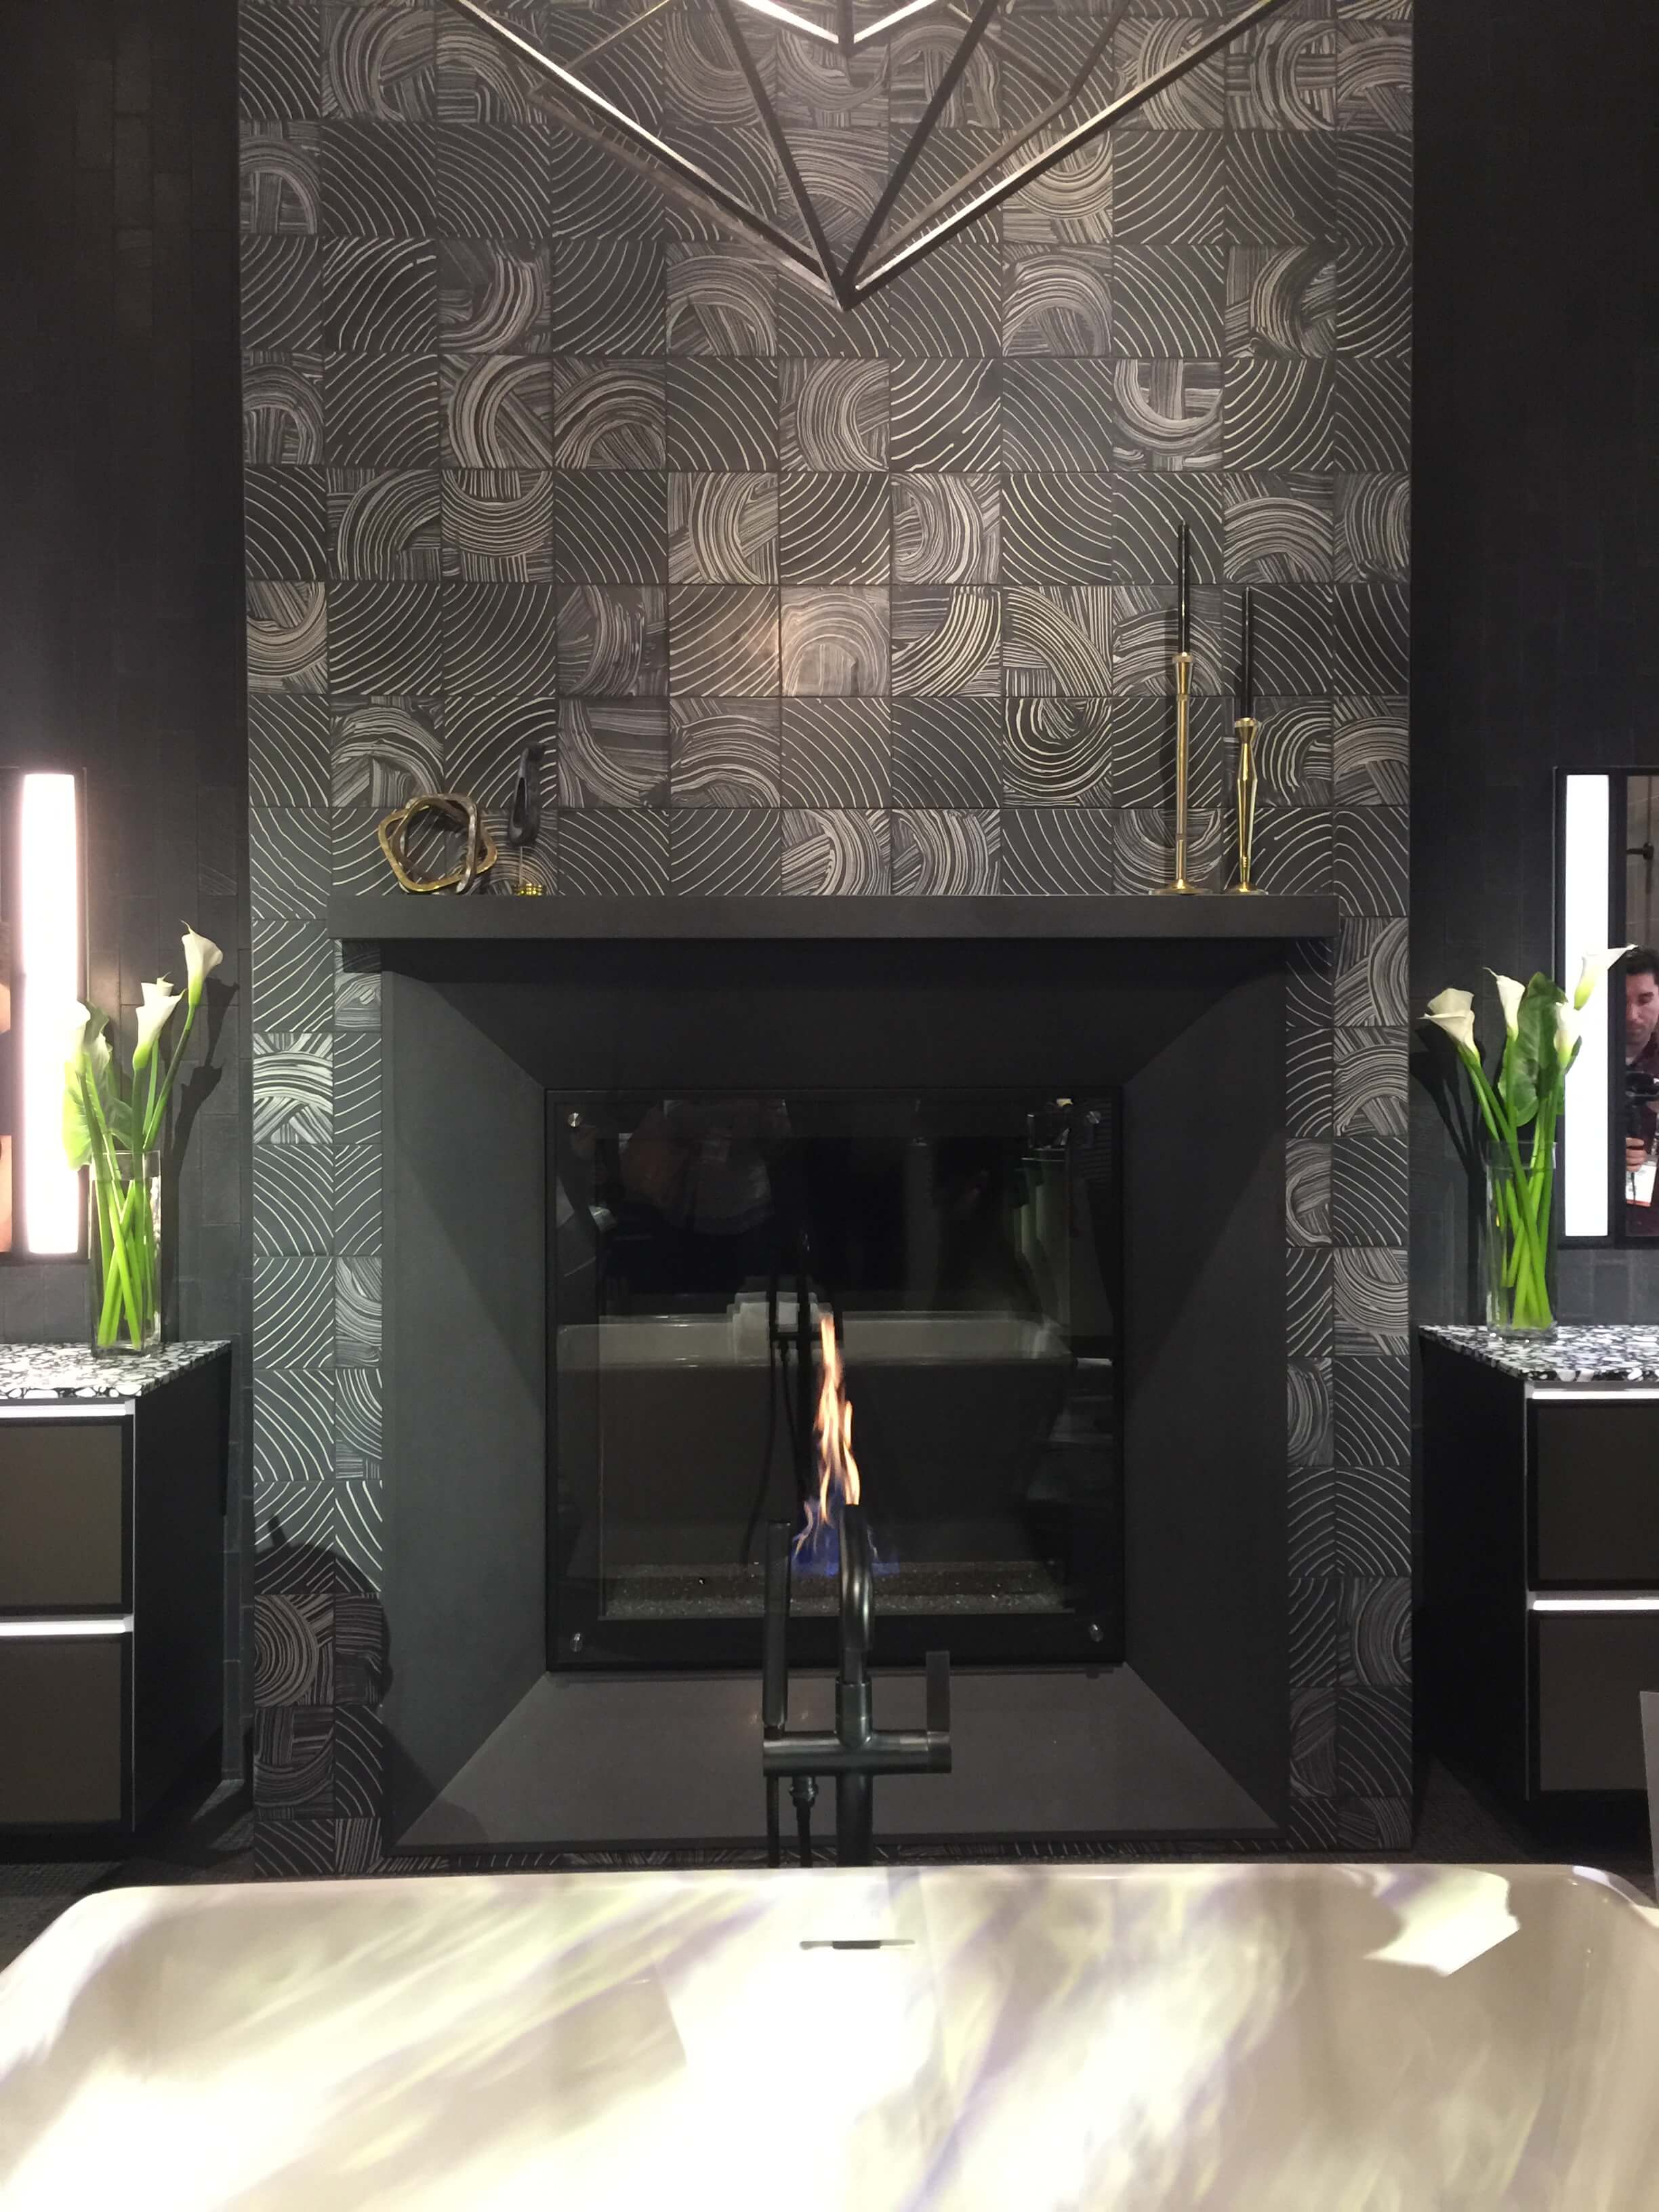 This black and white patterned tile makes a unique statement here on a fireplace in the Ann Sacks booth. Almost looks like swirls from a fingerprint, no? #fireplace #blacktile #blackfireplace #annsacks